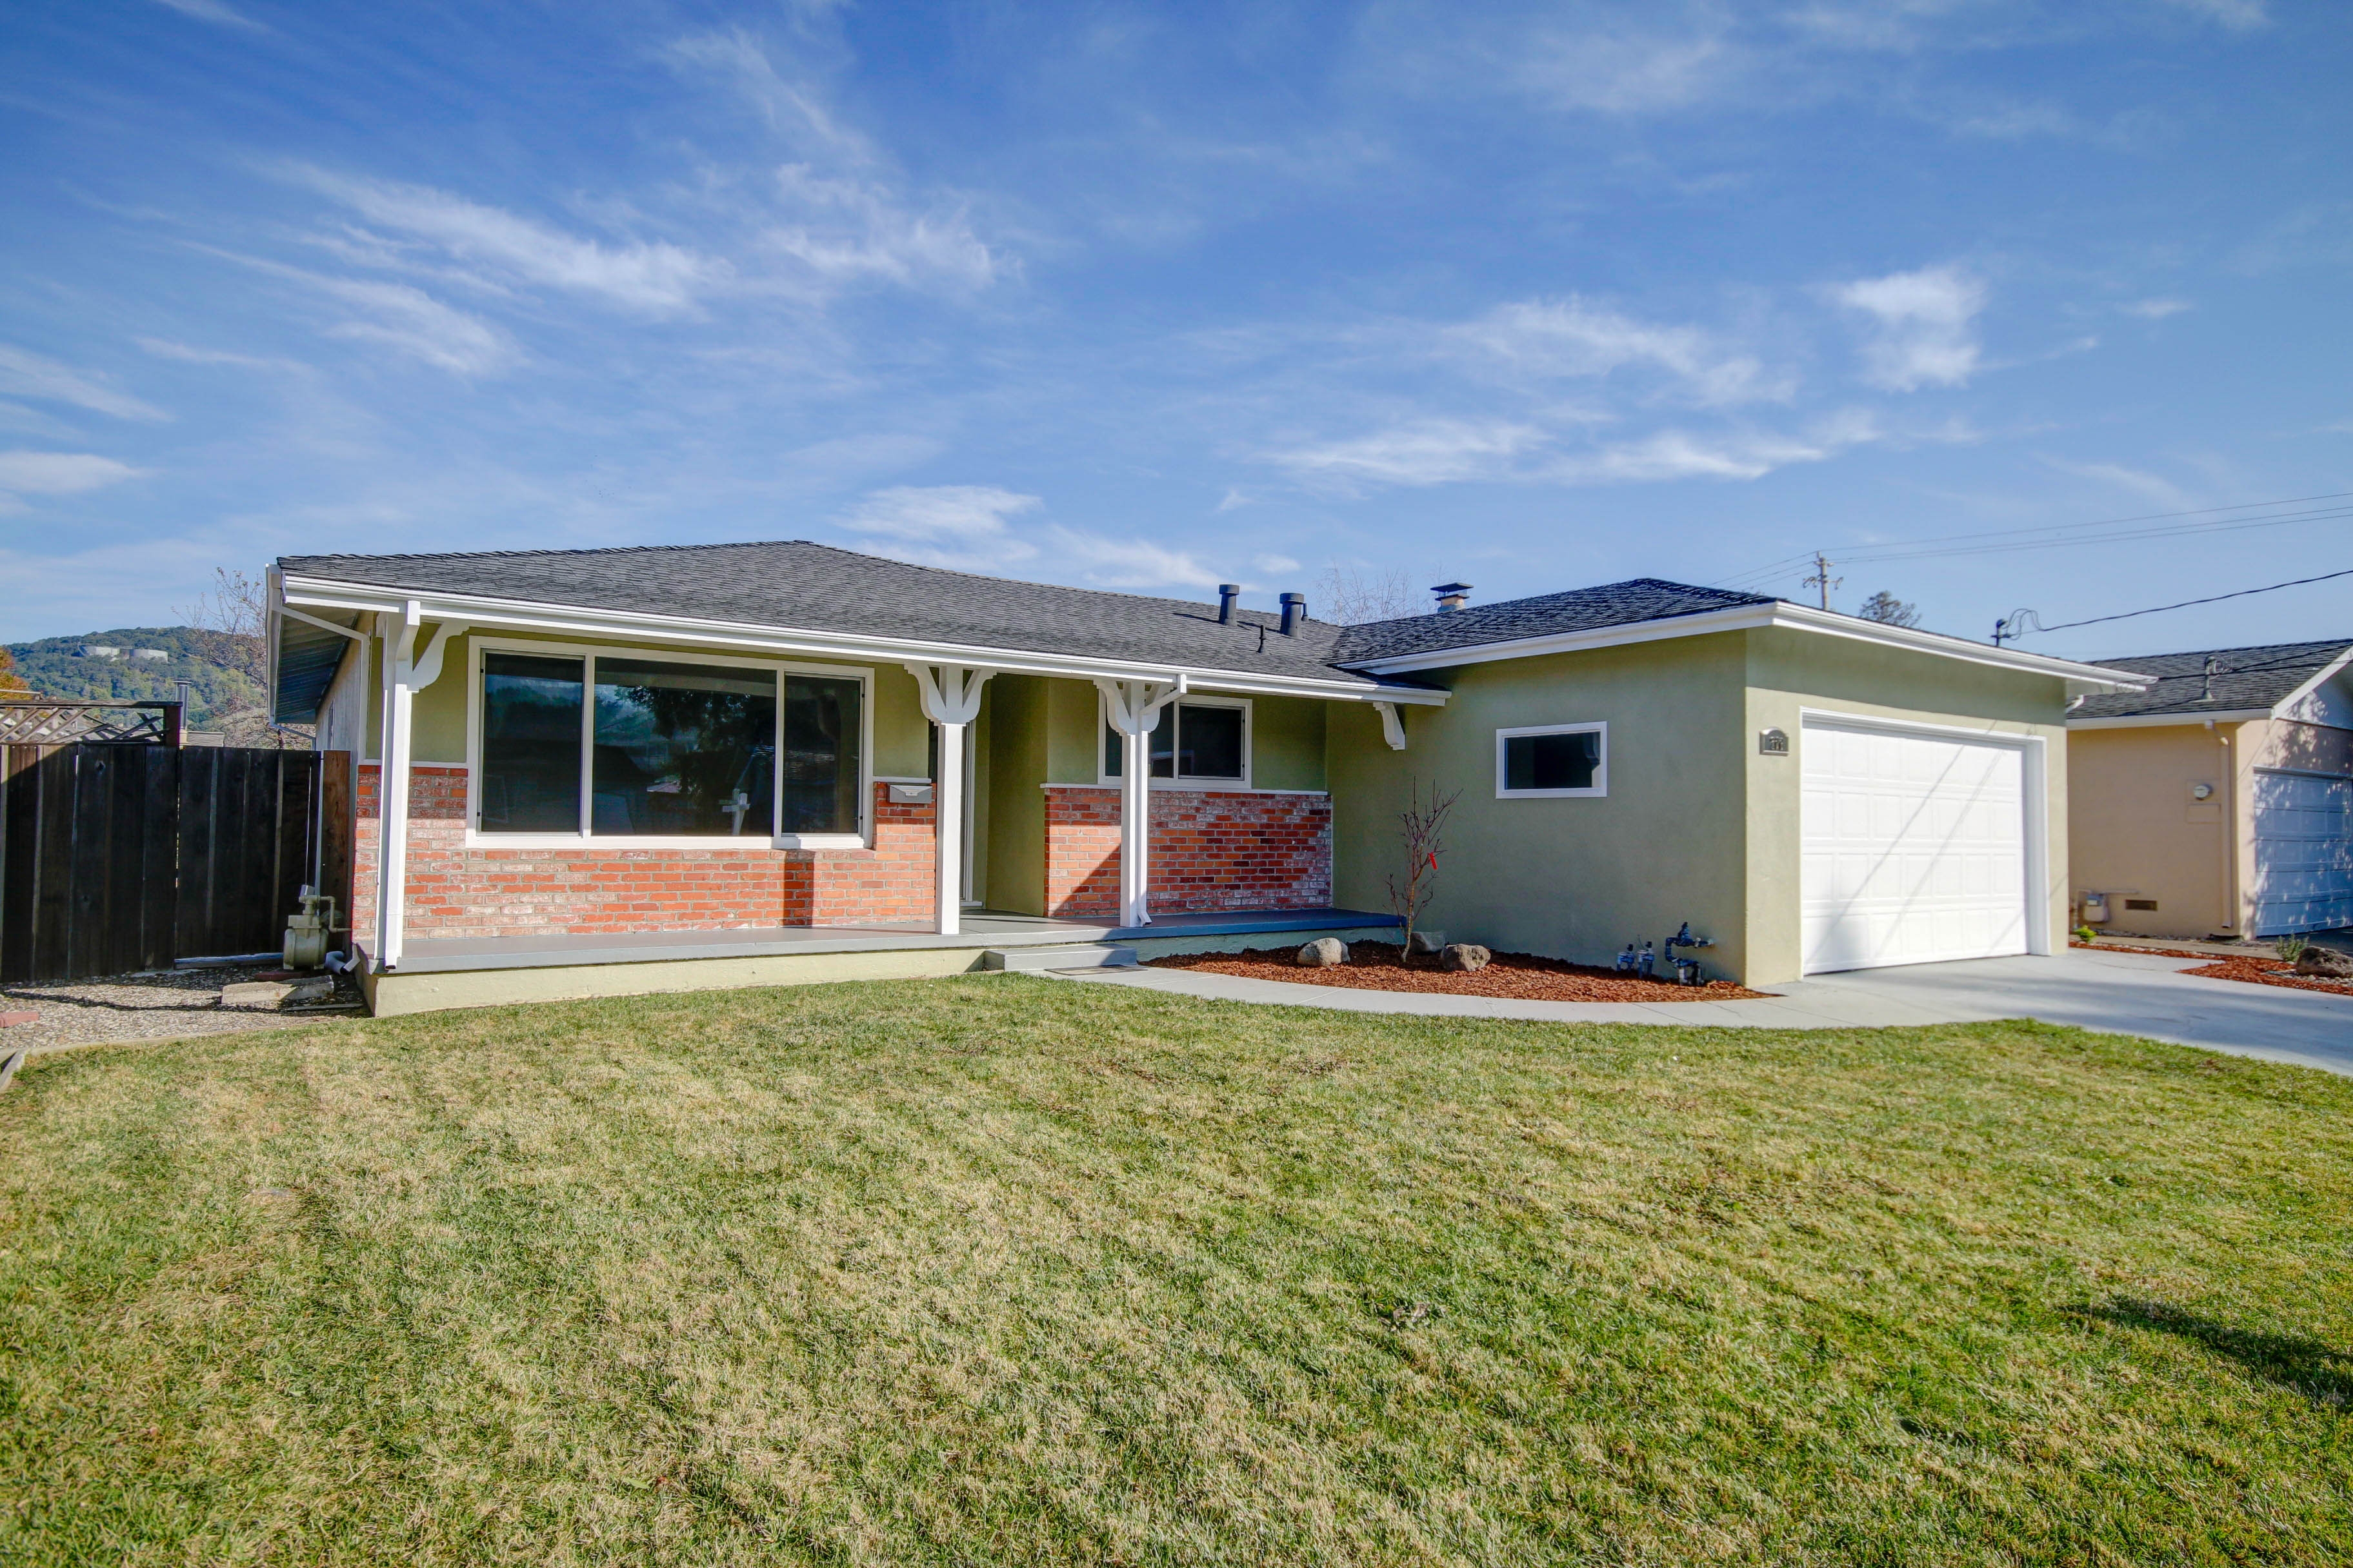 Single Family Home for Sale at Single Story Kenney Brookwood 206 Arias Street San Rafael, California 94903 United States